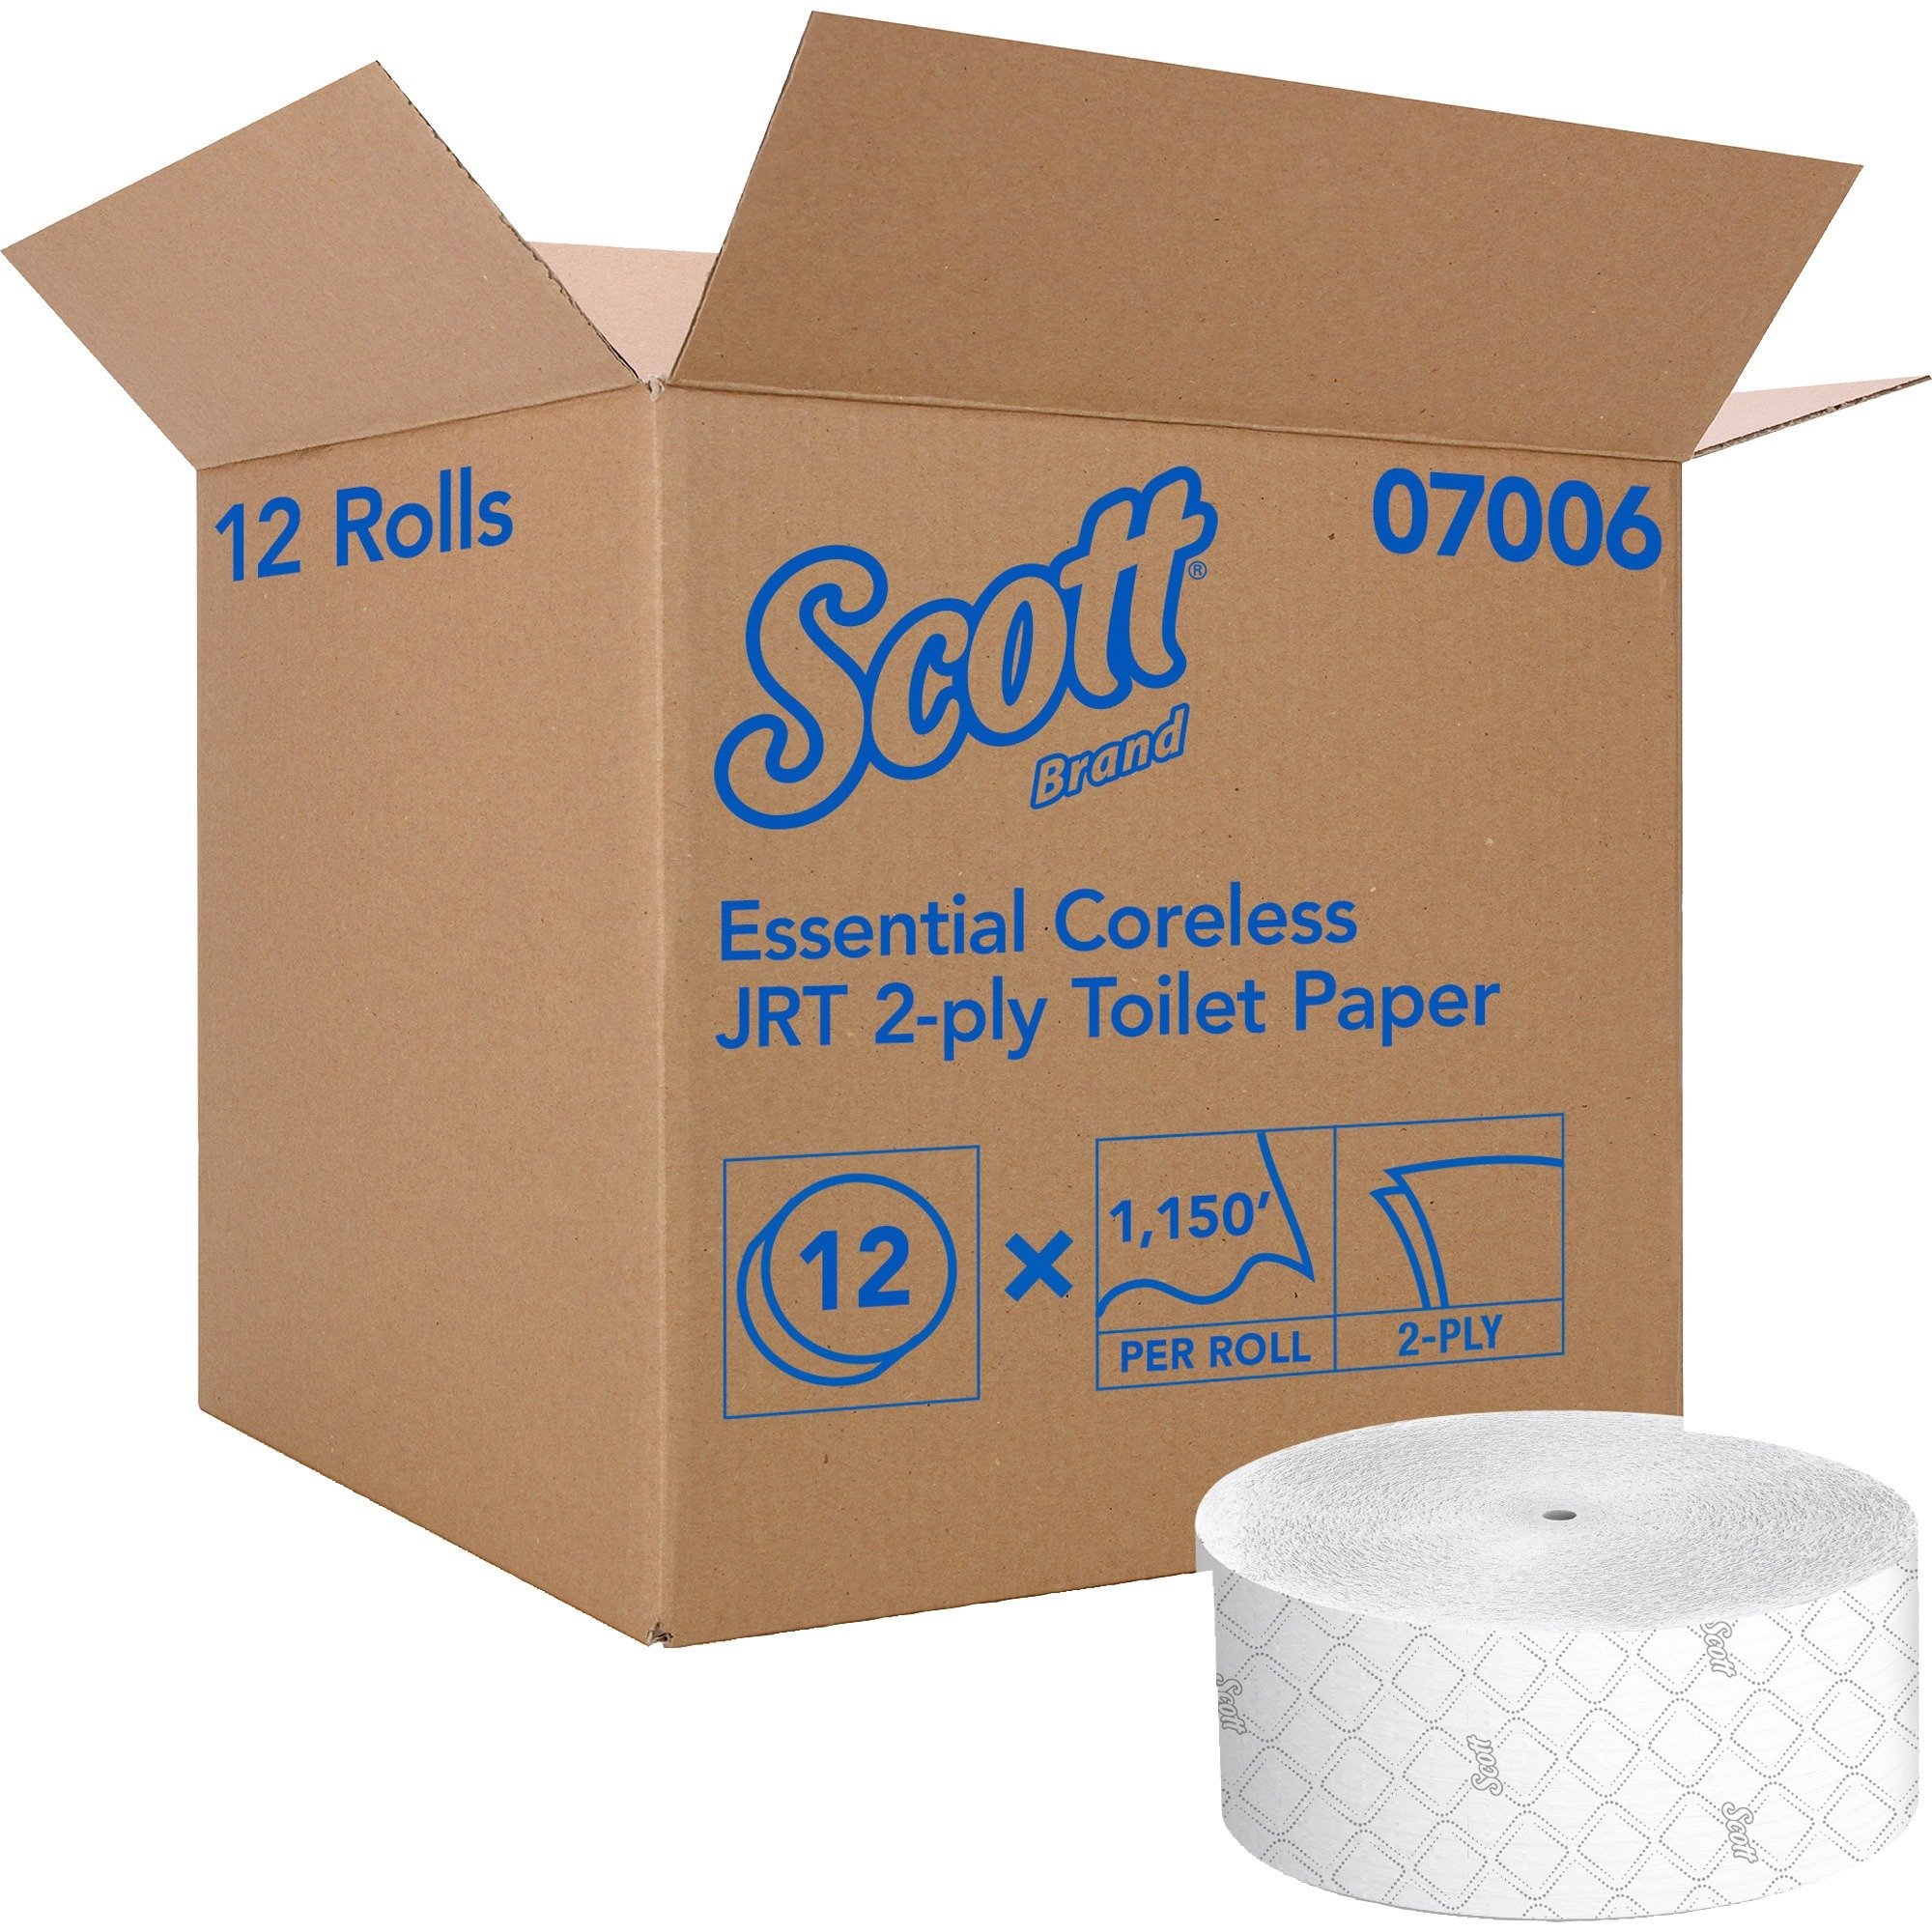 Scott Coreless Jumbo Roll Tissue